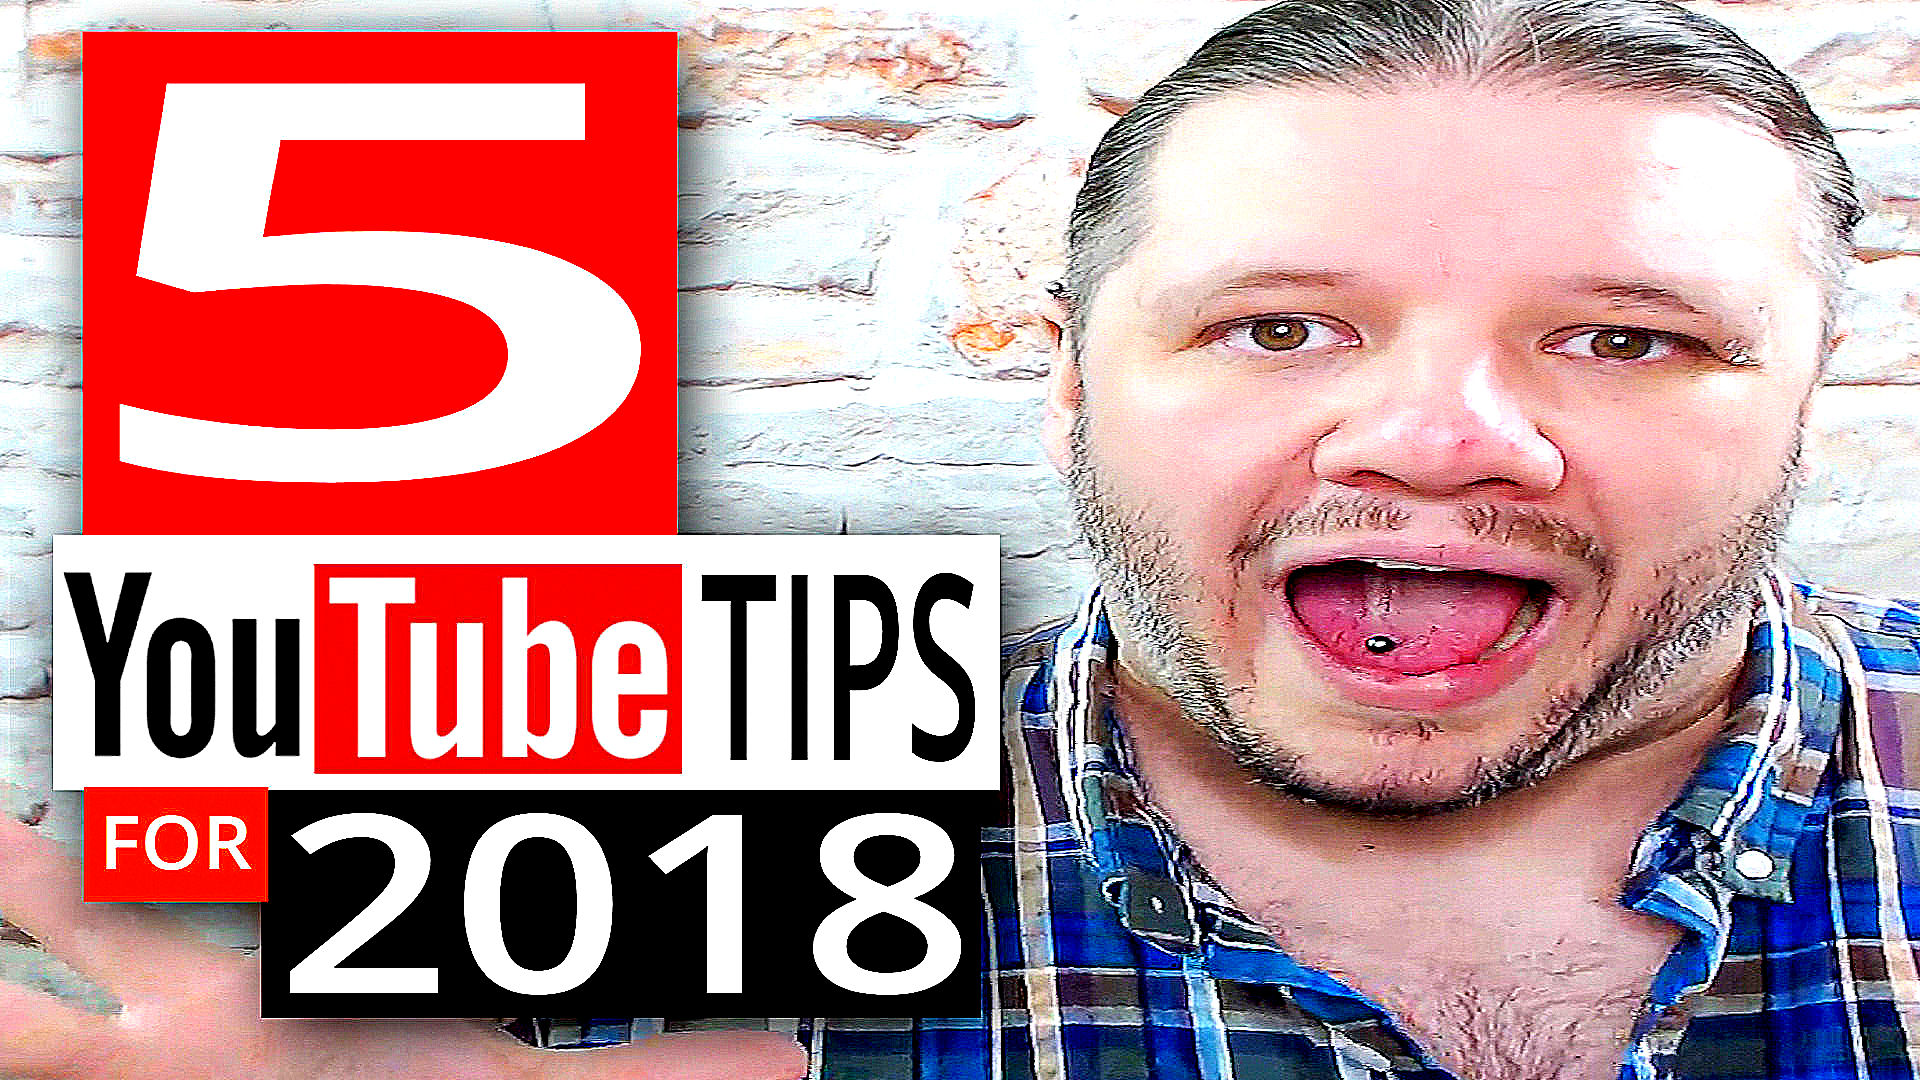 alan spicer,alanspicer,youtube tips,youtube tricks,asyt,5 MUST KNOW YouTube Tips for 2018,youtube tips for 2018,youtube tips 2018,must know youtube tips,youtube tricks 2018,2018,youtube 2018,YouTuber Tricks,Get more YouTube subscribers,get more video views,Get more YouTube subscribers 2018,get more video views 2018,youtube subs 2018,youtube subs,desire martinez,nicknimmin,nick nimmin,roberto blake,amy schmittauer,new youtuber tips